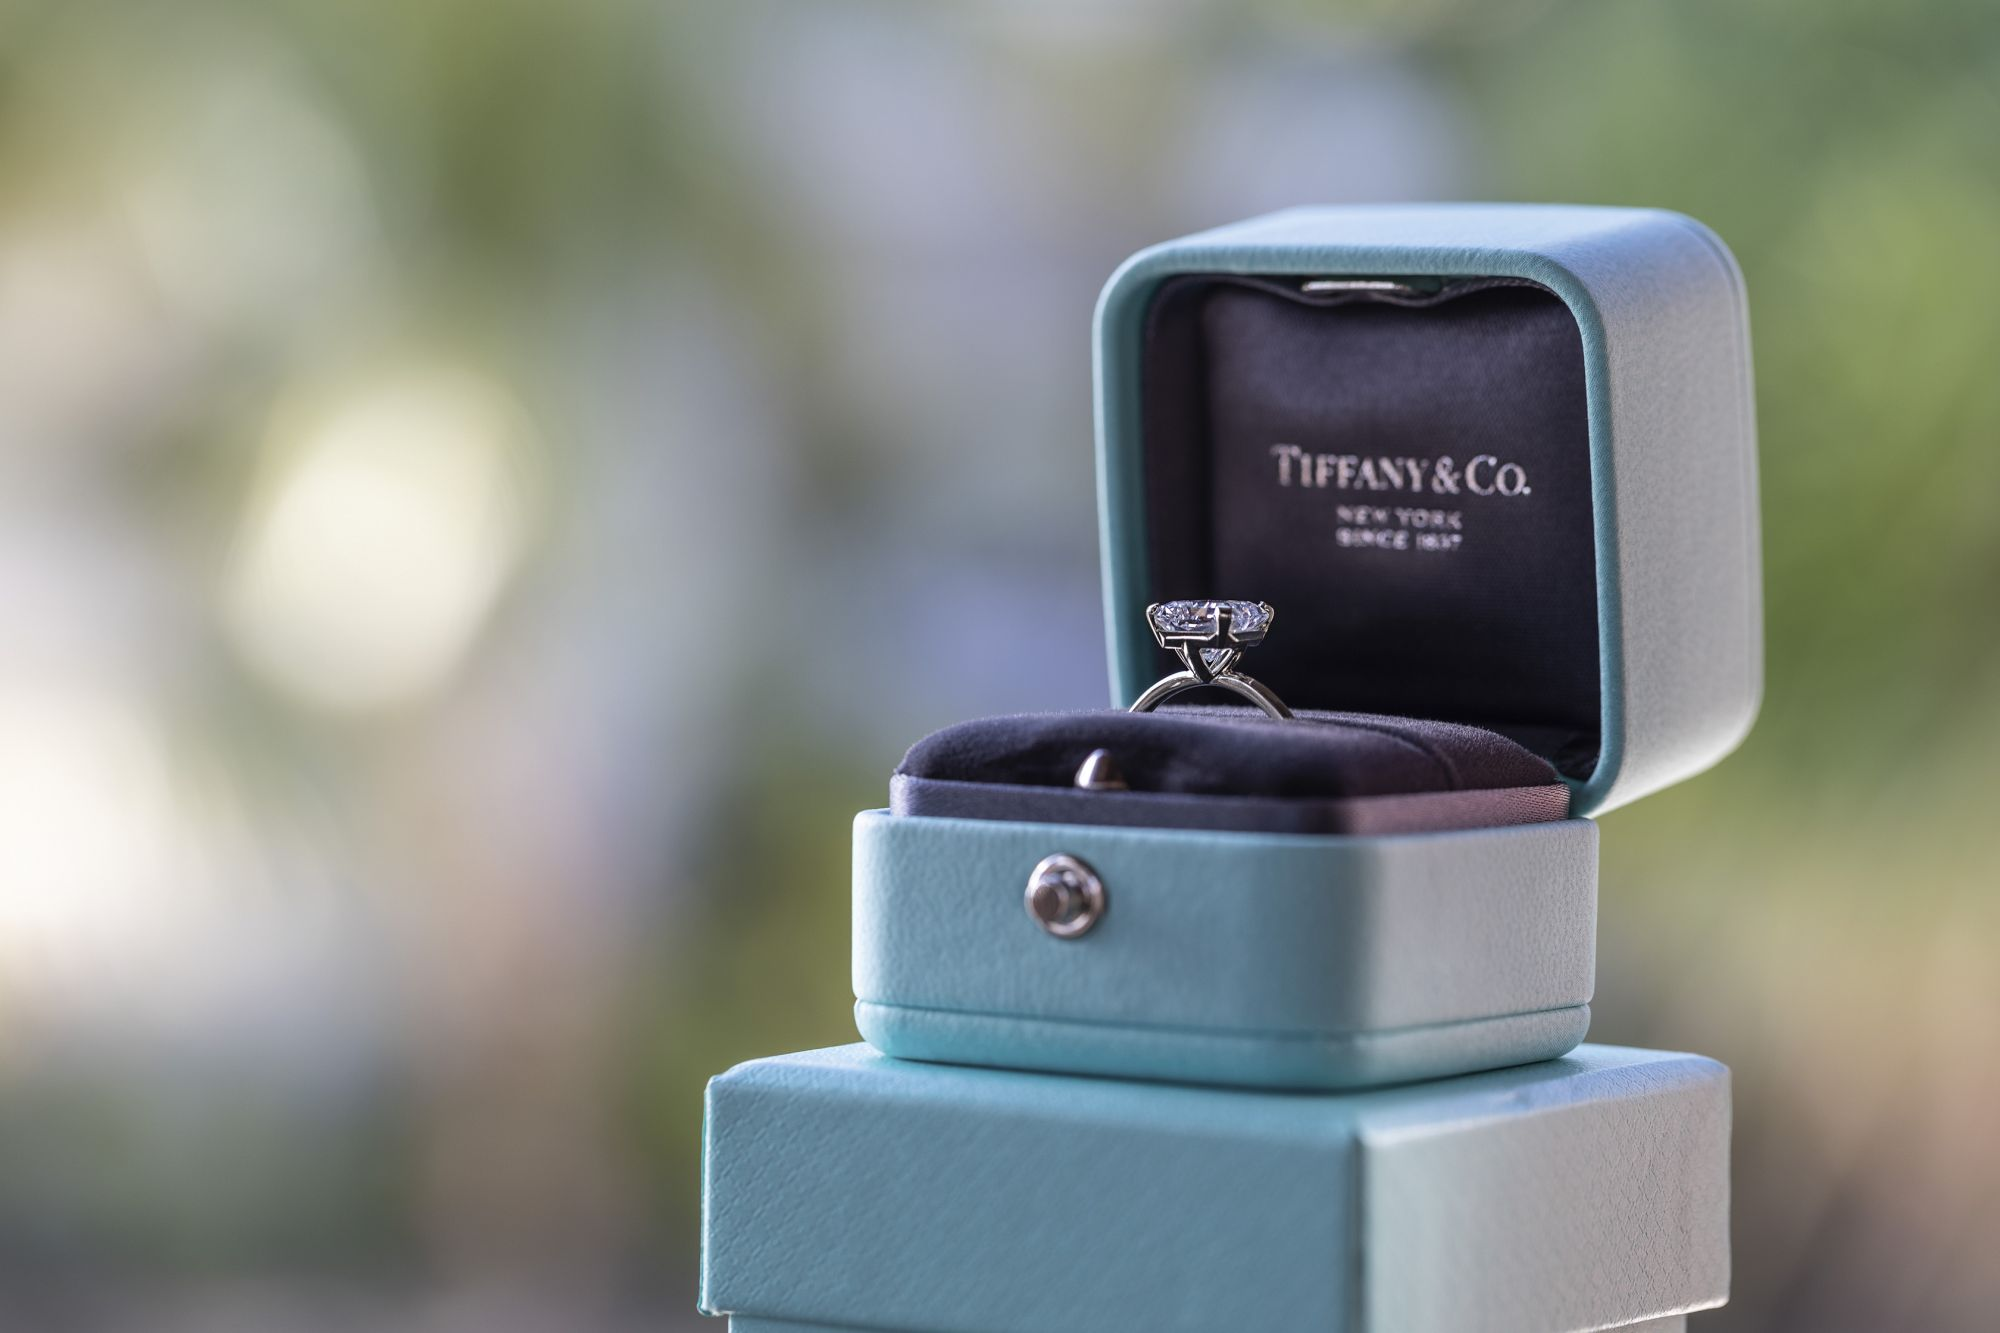 How Far Does A Tiffany & Co. Diamond Have To Travel Before It Gets To You?